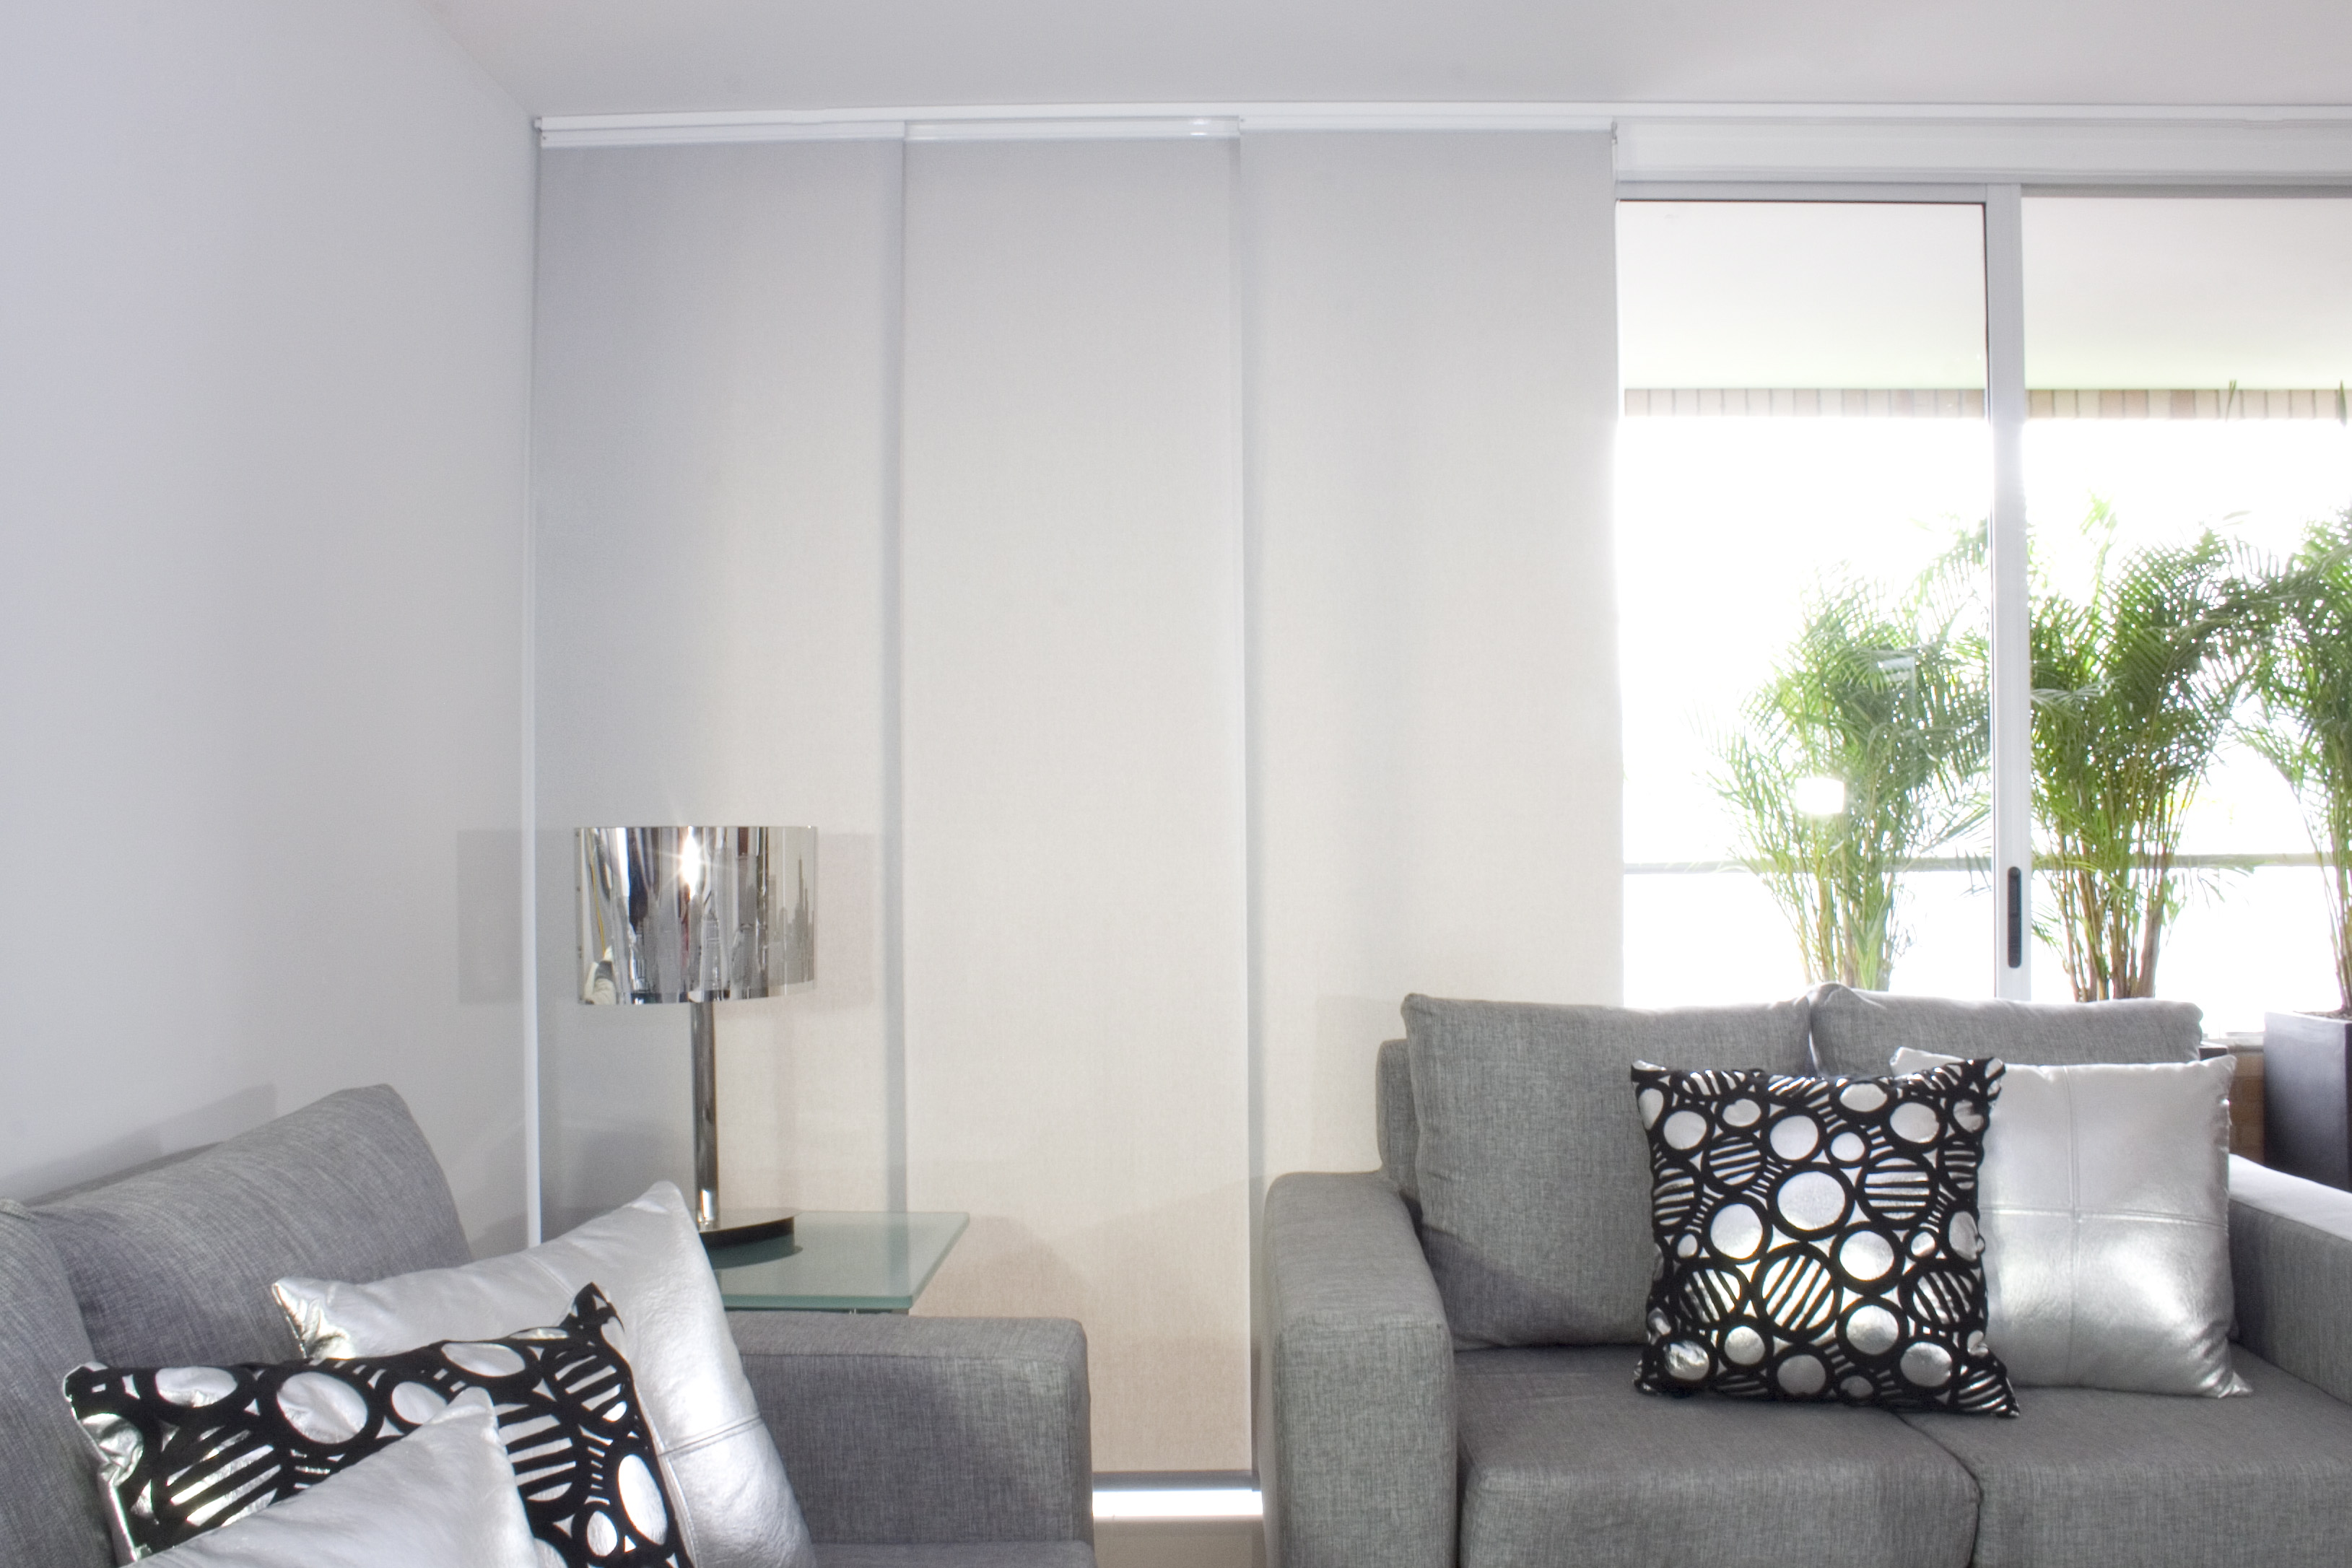 Ventanas intimidad decoraci n cortinas persianas - Como colocar panel japones ...